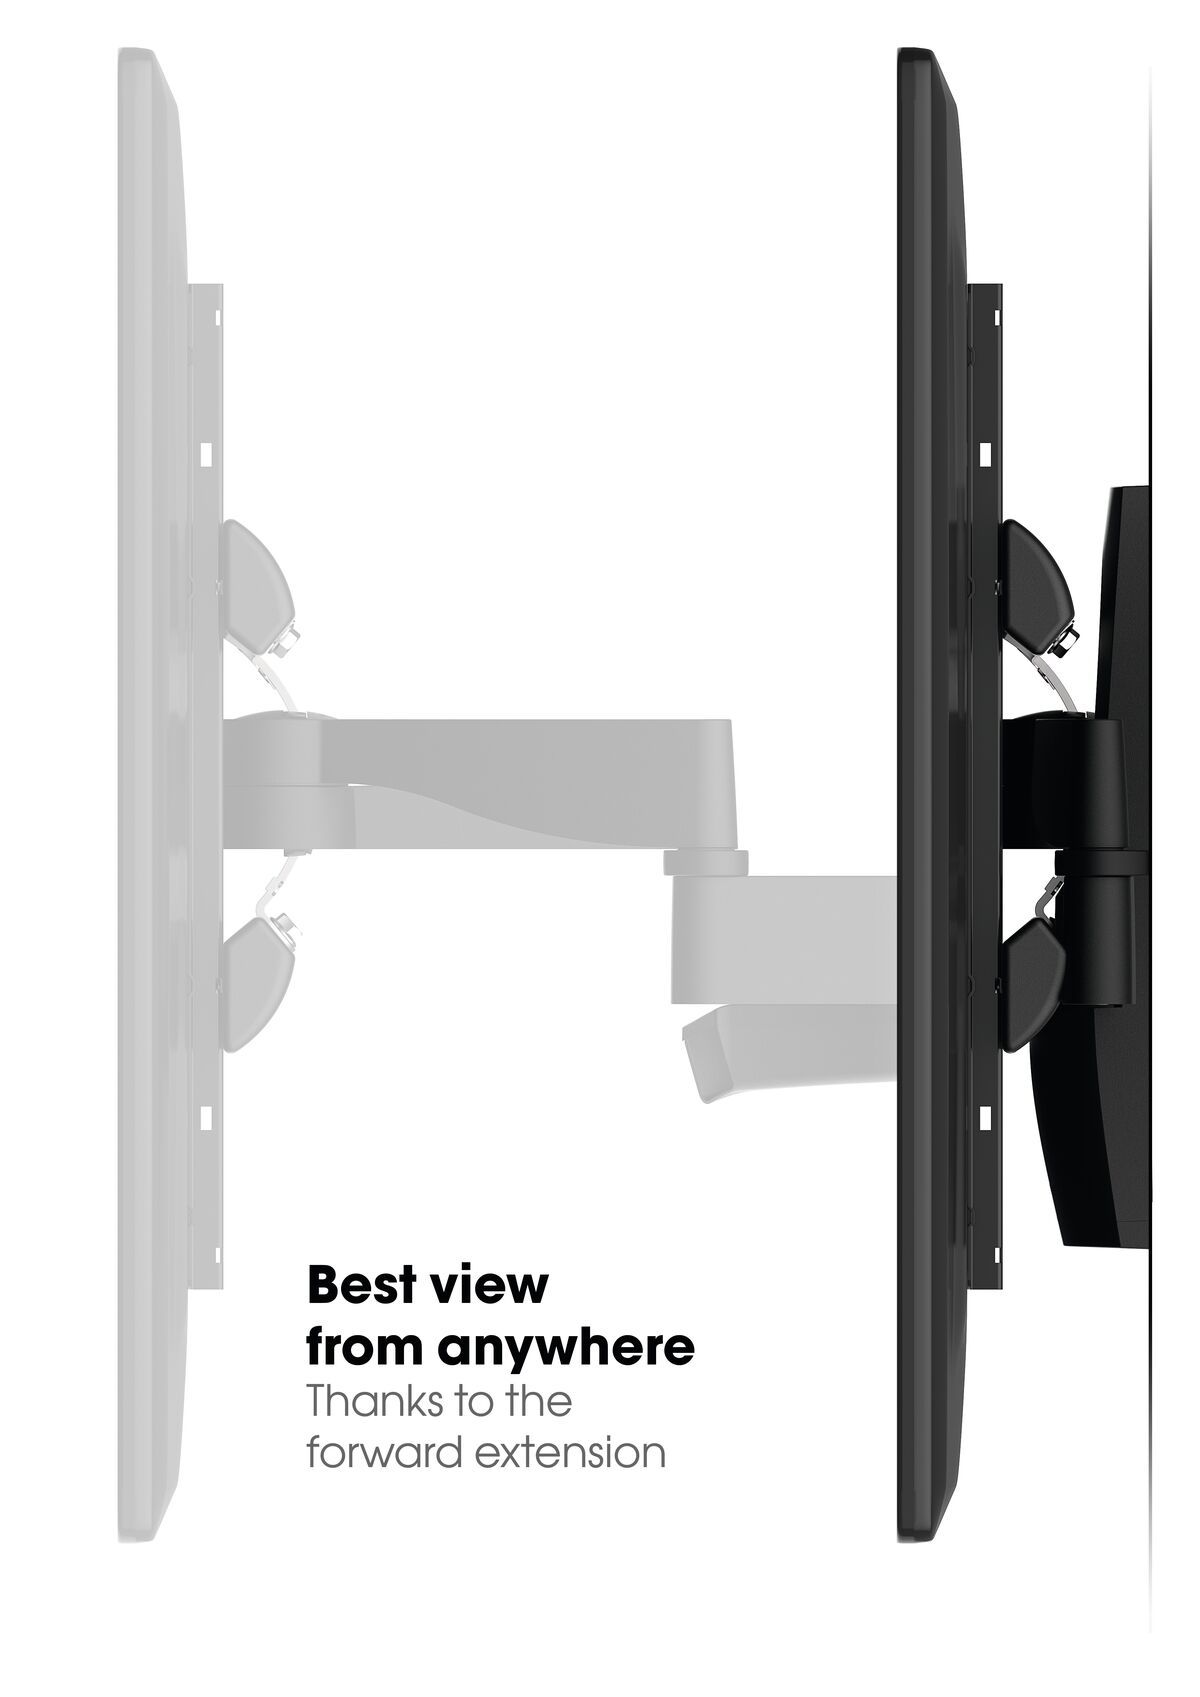 Vogel's WALL 3350 Full-Motion TV Wall Mount - Suitable for 40 up to 65 inch TVs - Forward and turning motion (up to 120°) - Tilt up to 15° - USP